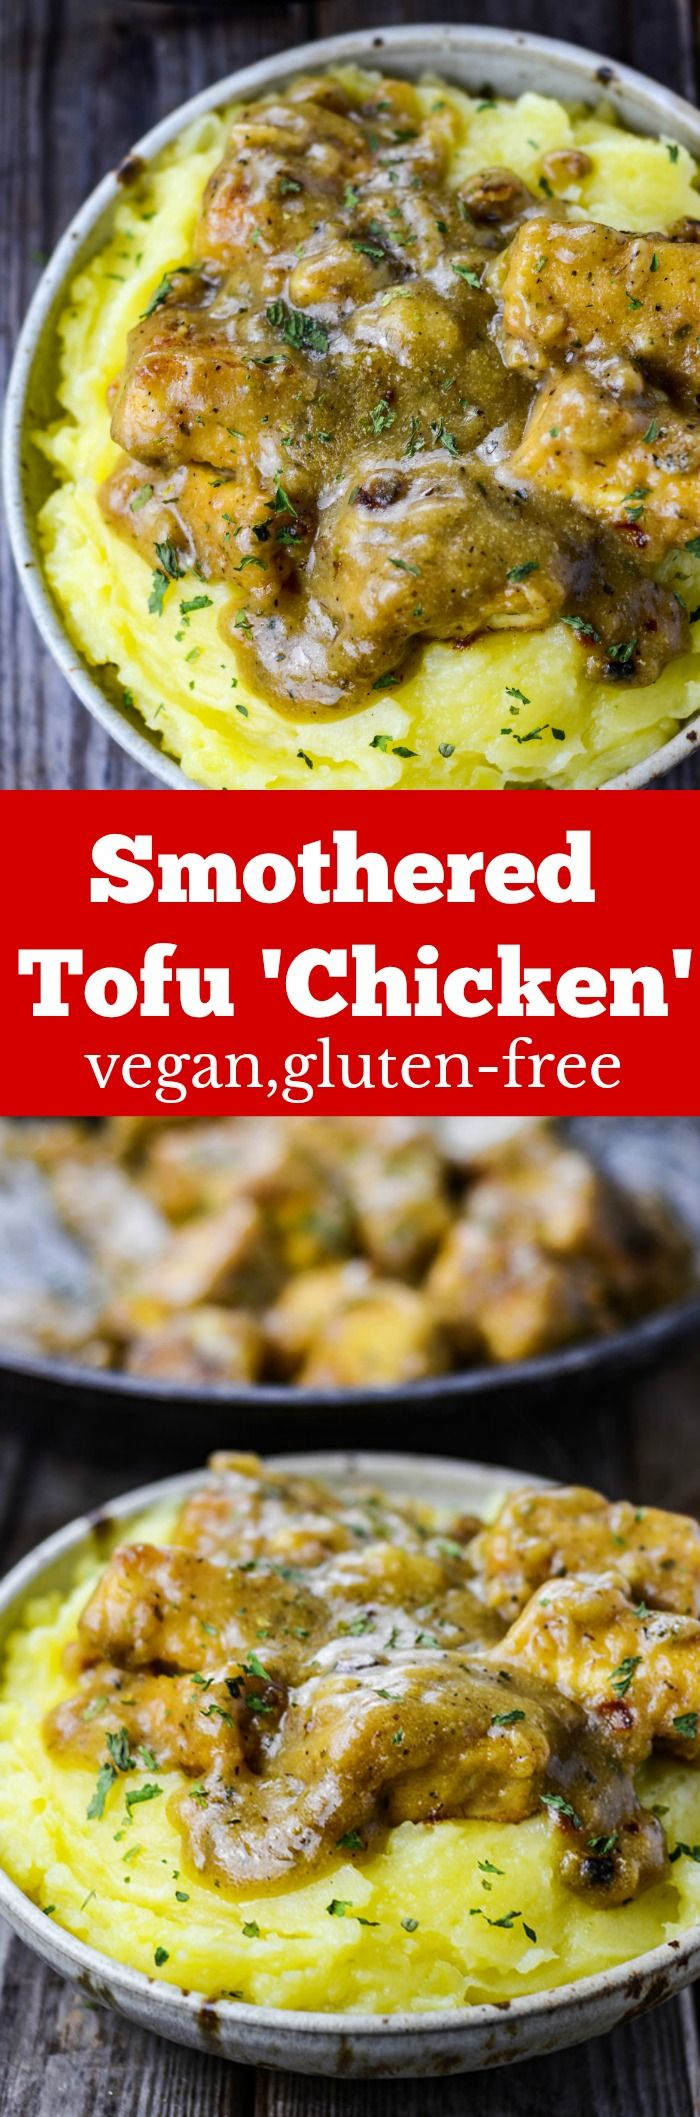 Delicious Smothered Tofu Chicken Recipe is the perfect vegan version of the Classic Southern dish, it is comforting and perfect for the holidays!